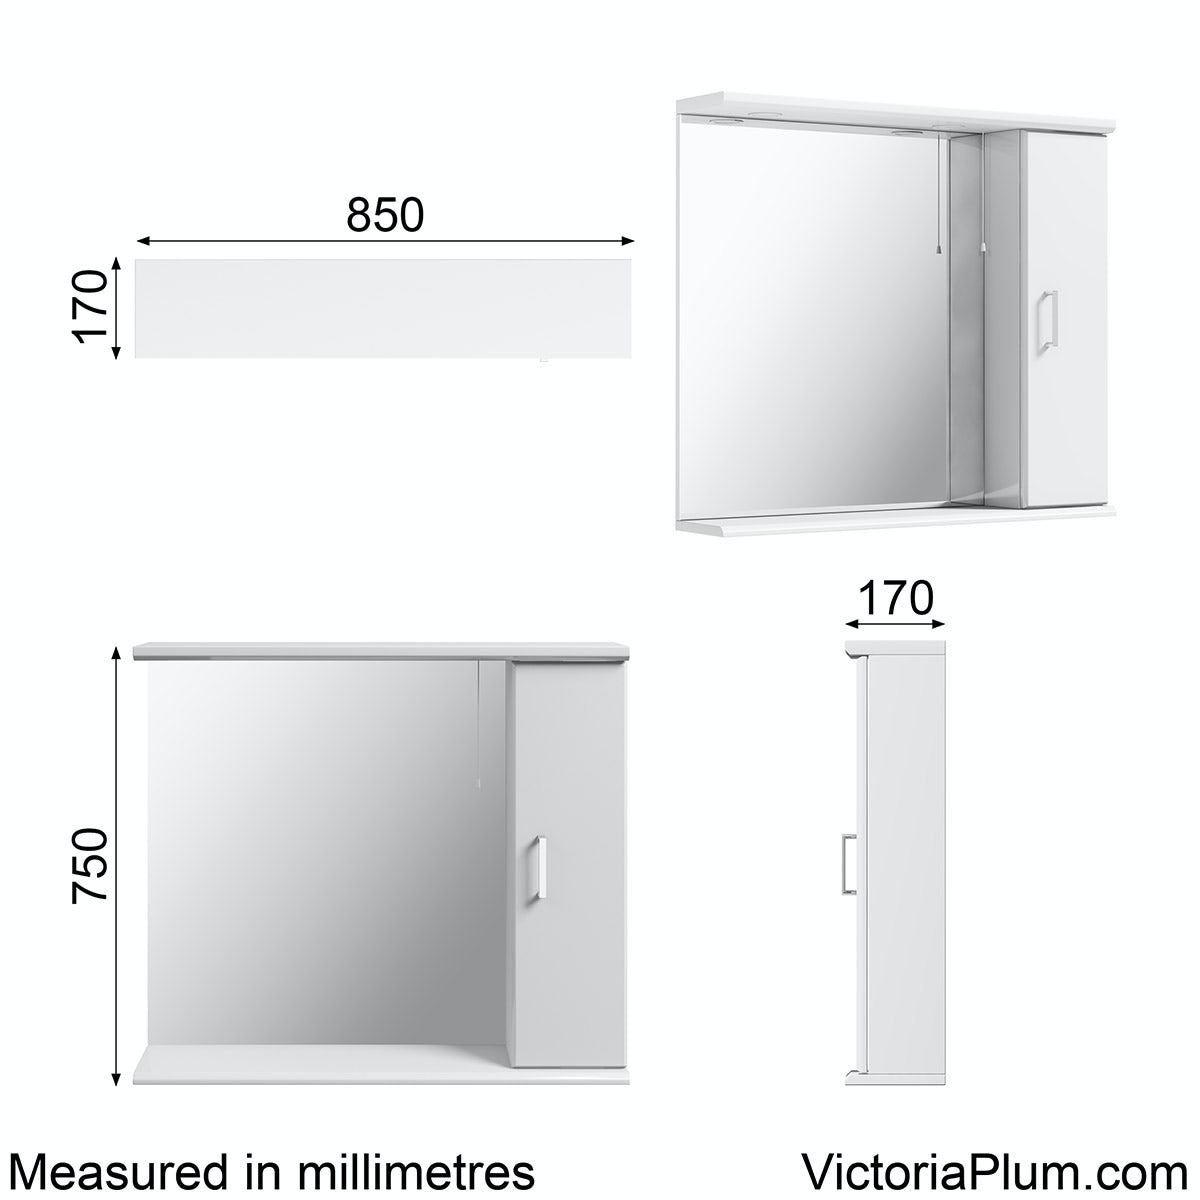 Dimensions for Orchard Eden white illuminated mirror 850mm